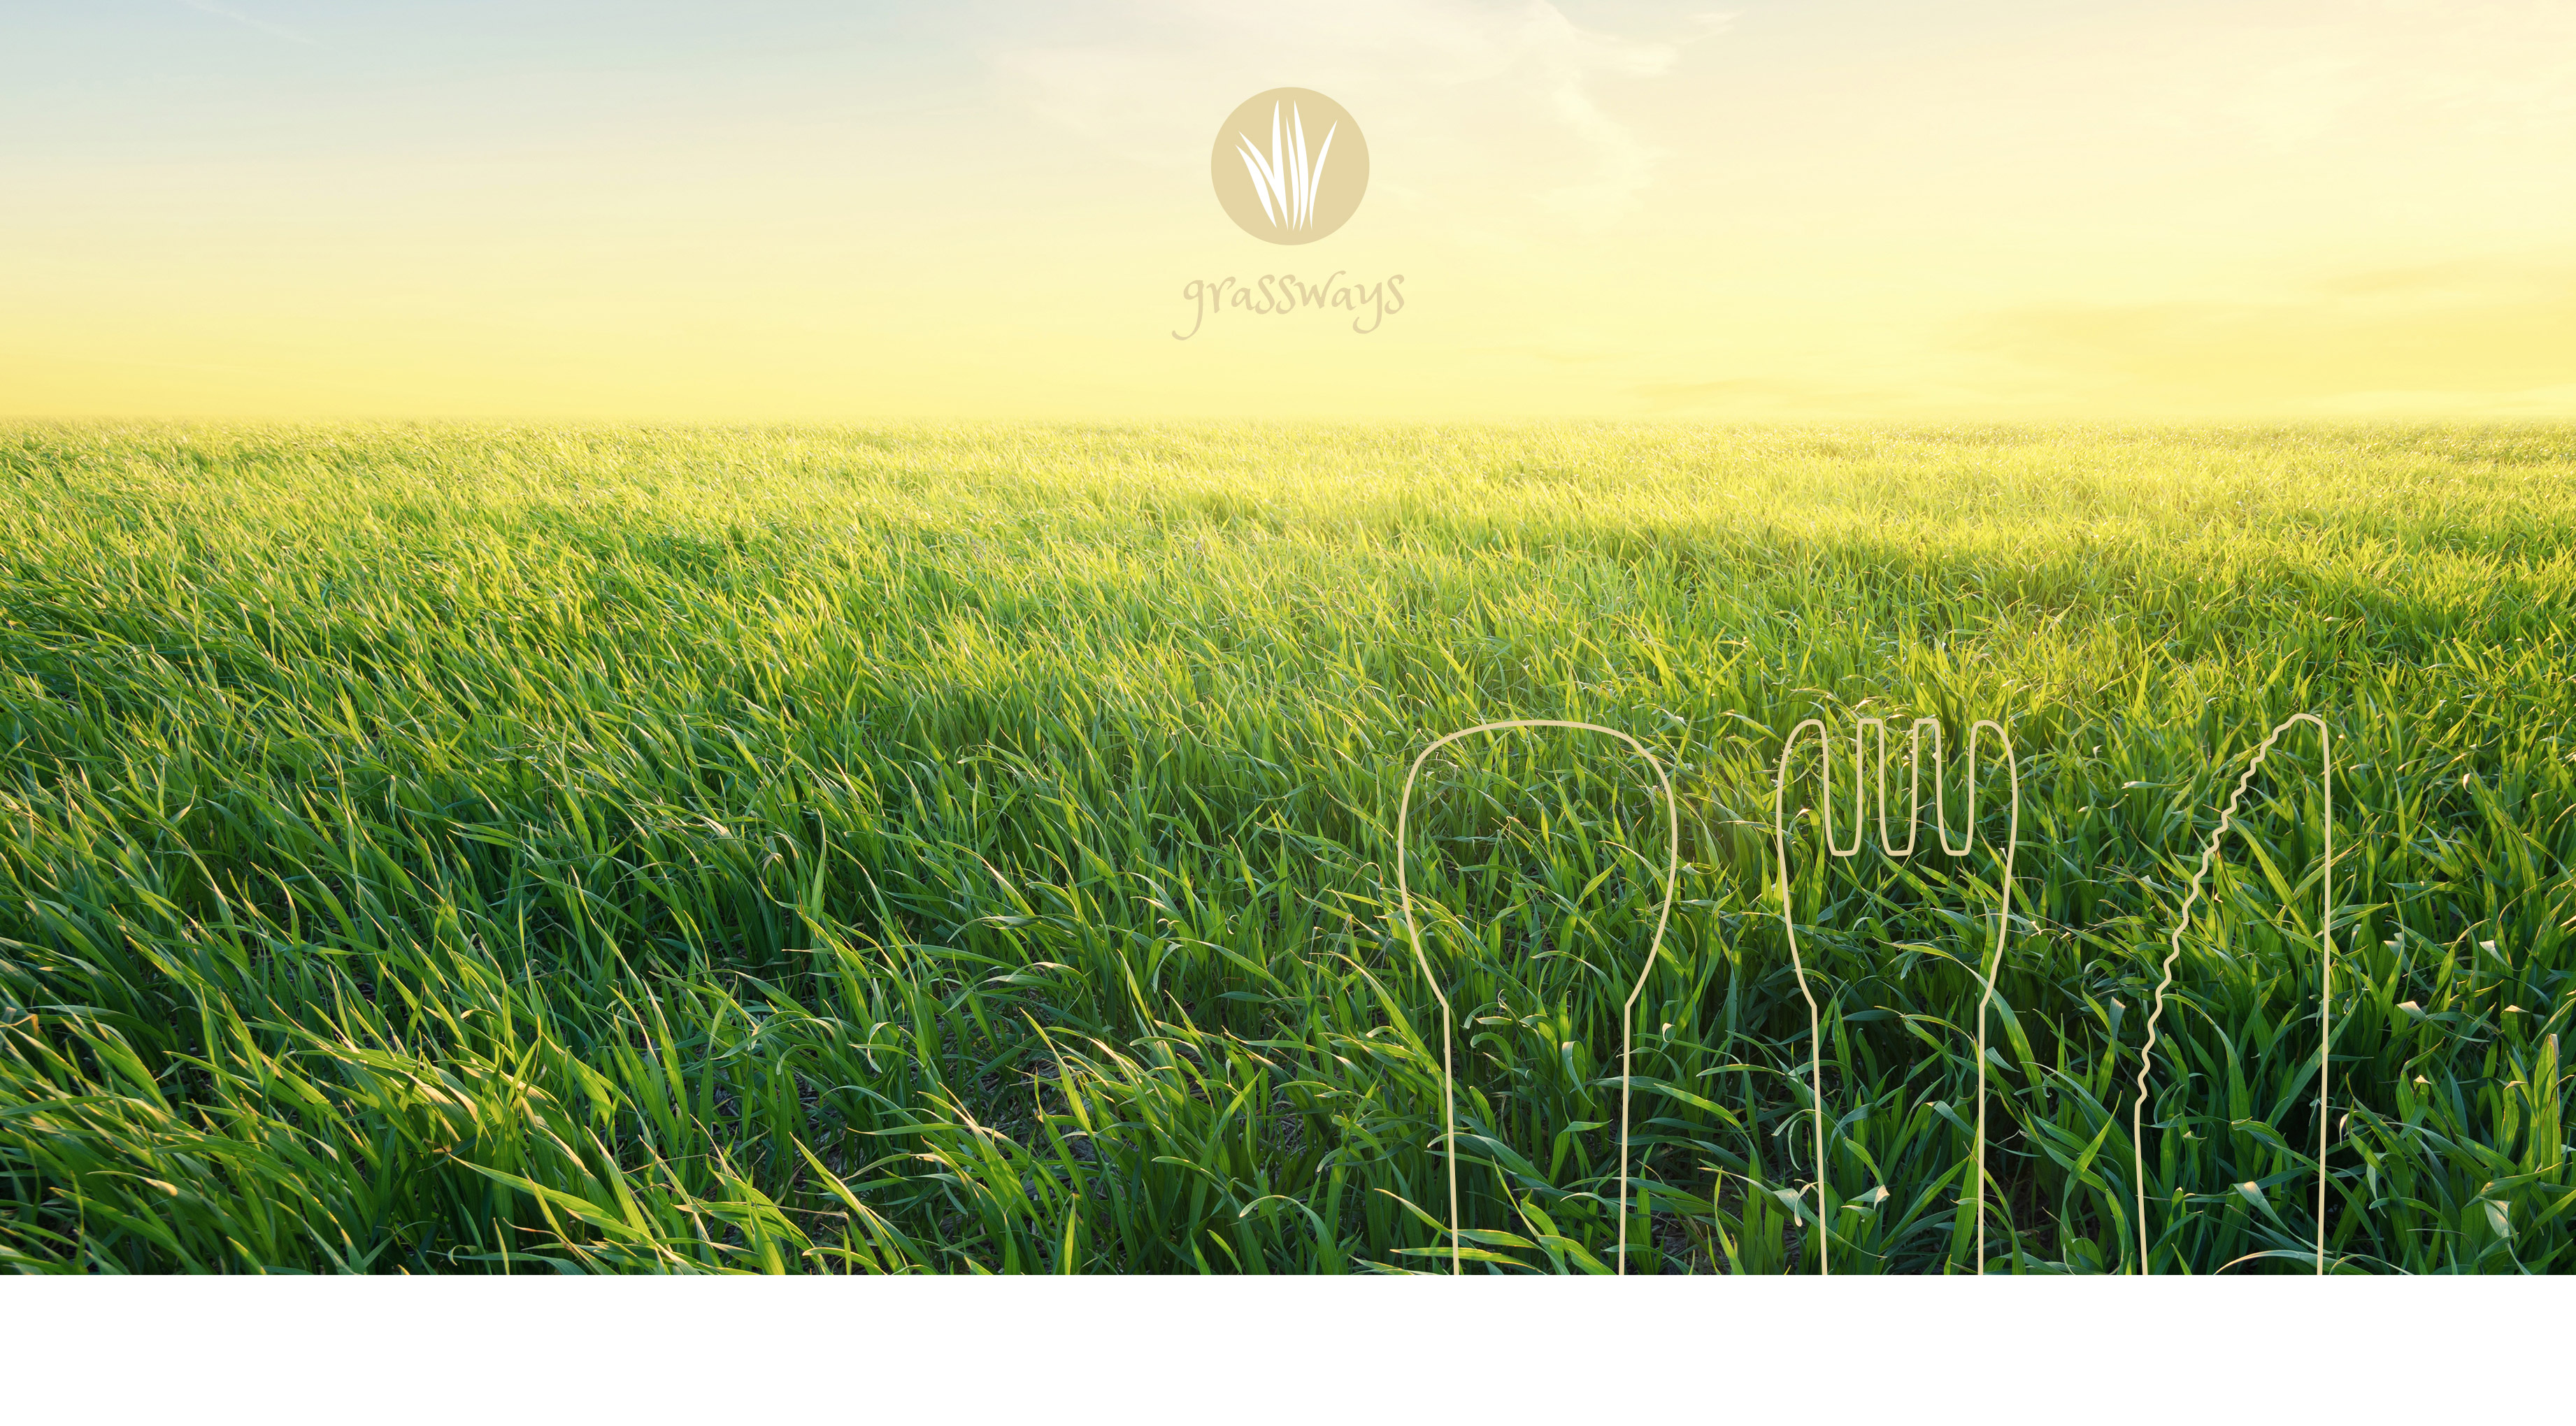 Projekt Corporate Design grassways Referenz